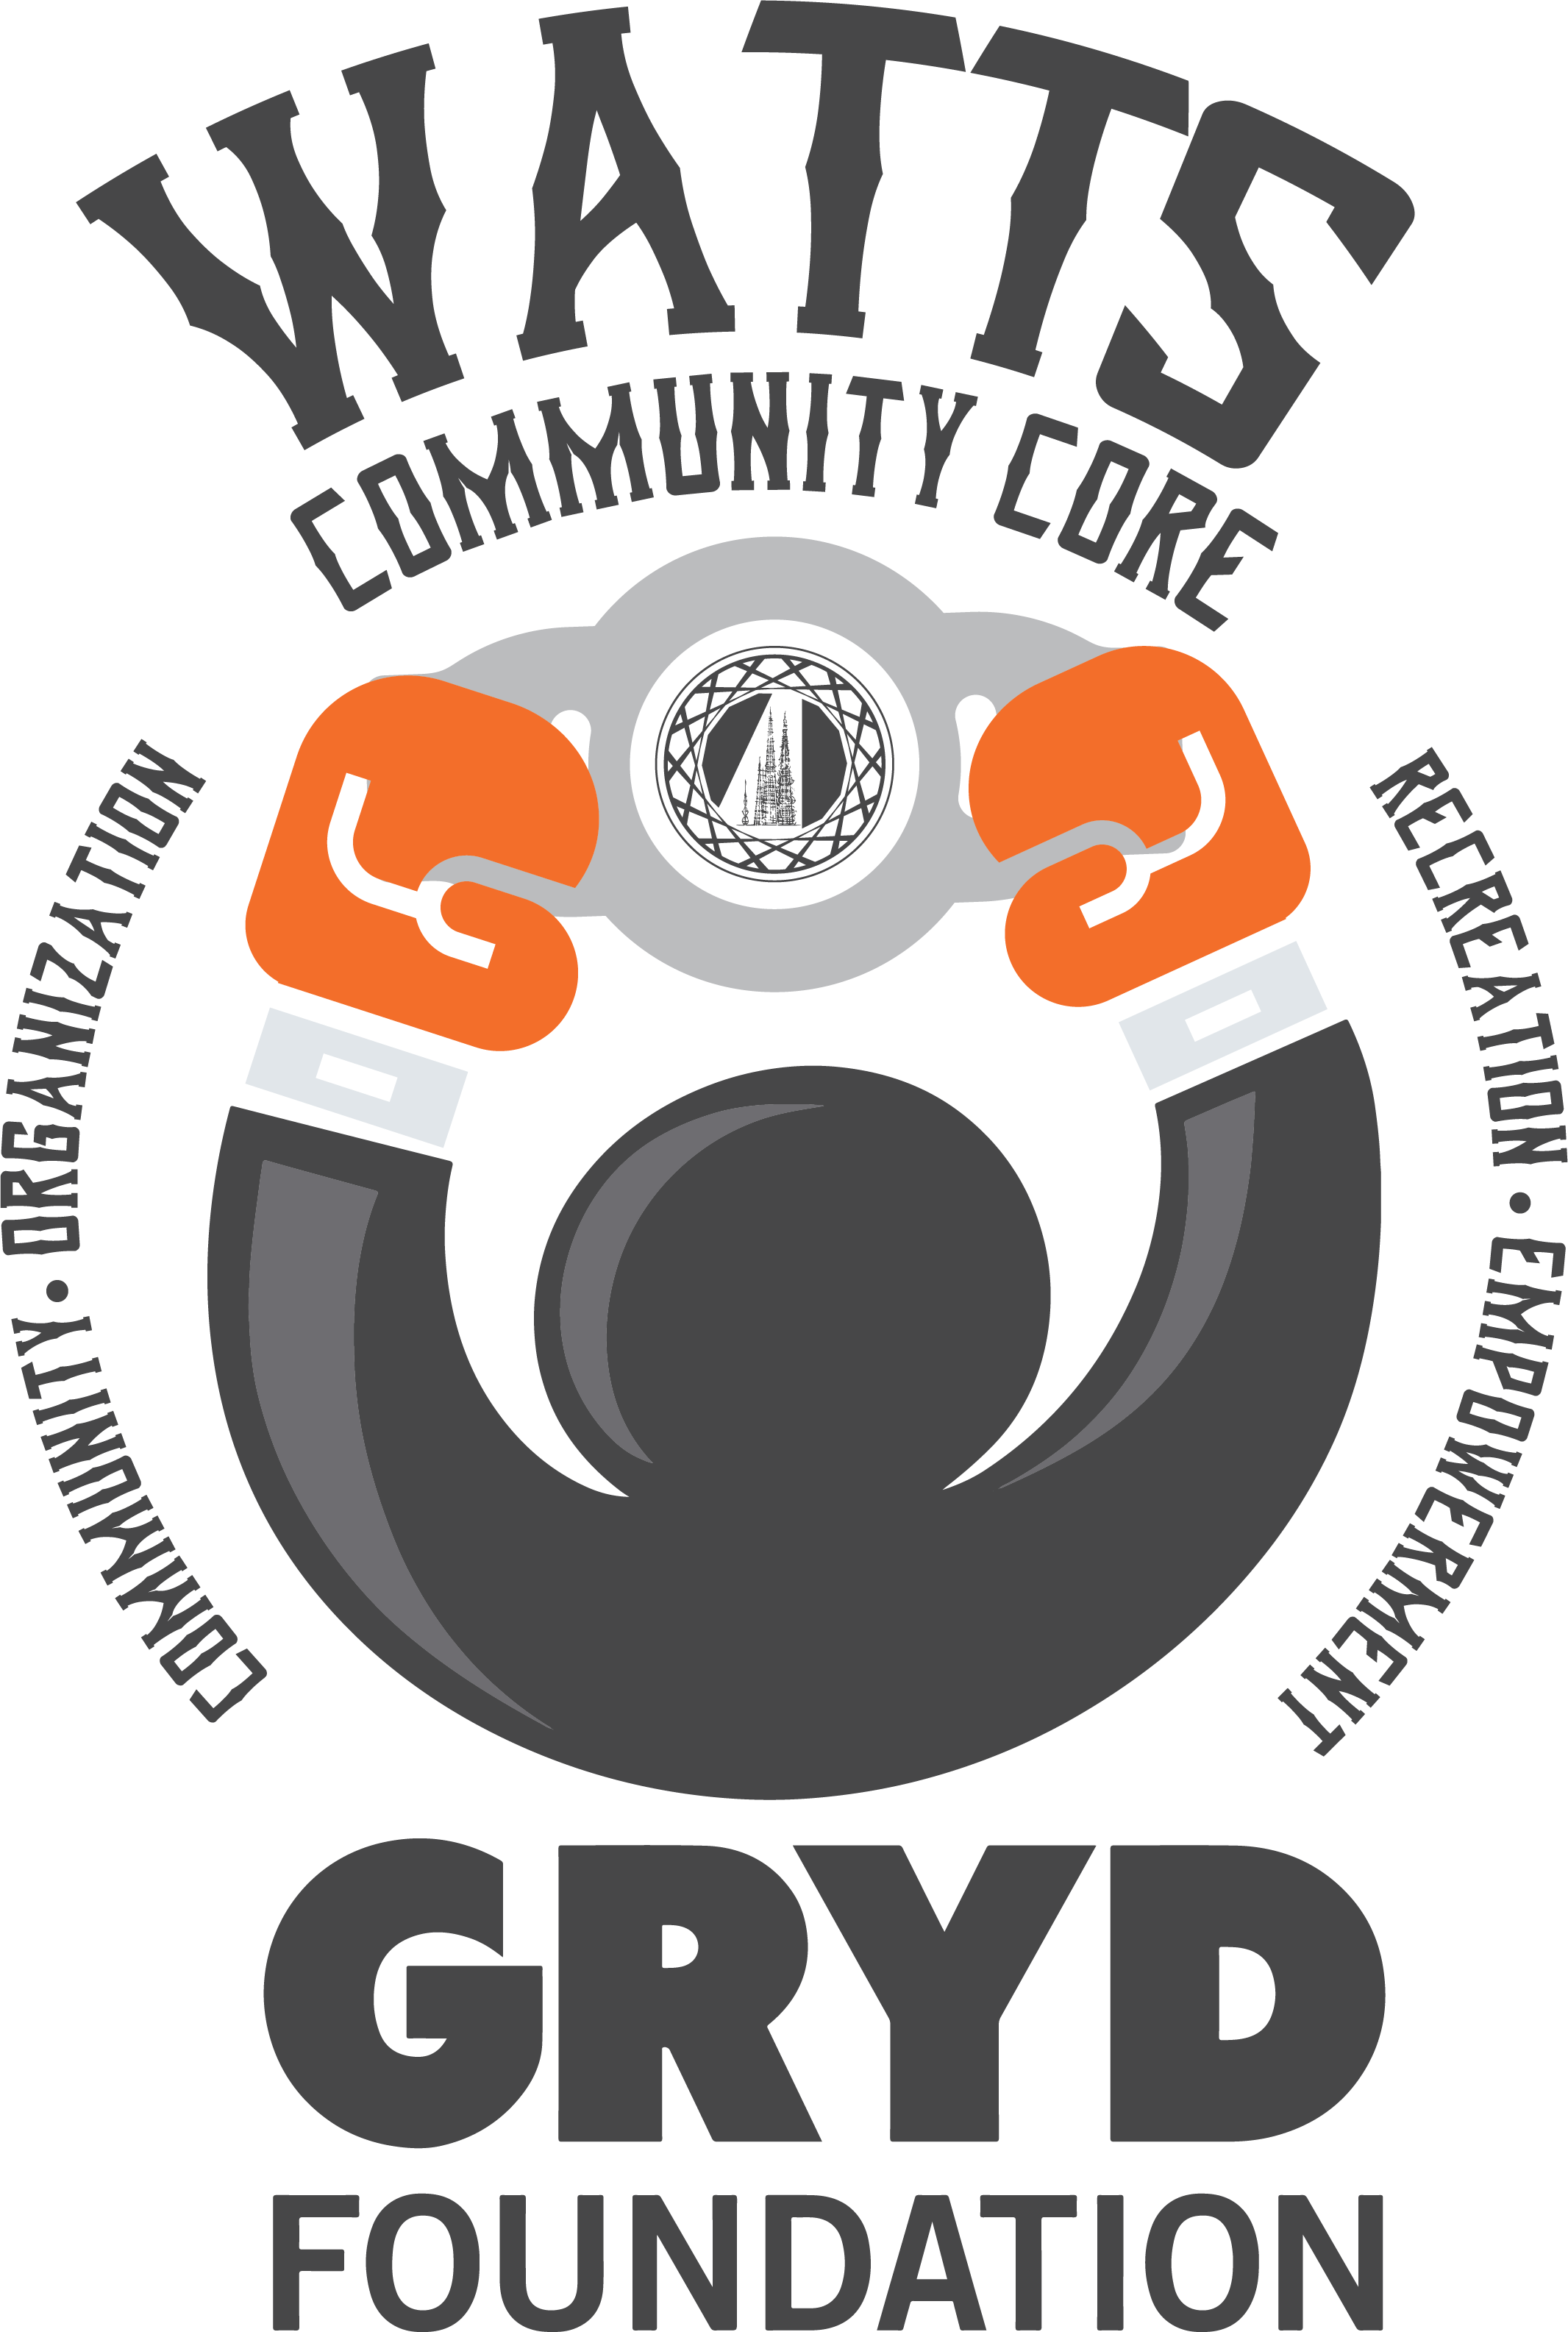 Watts Community Core : GRYD Foundation